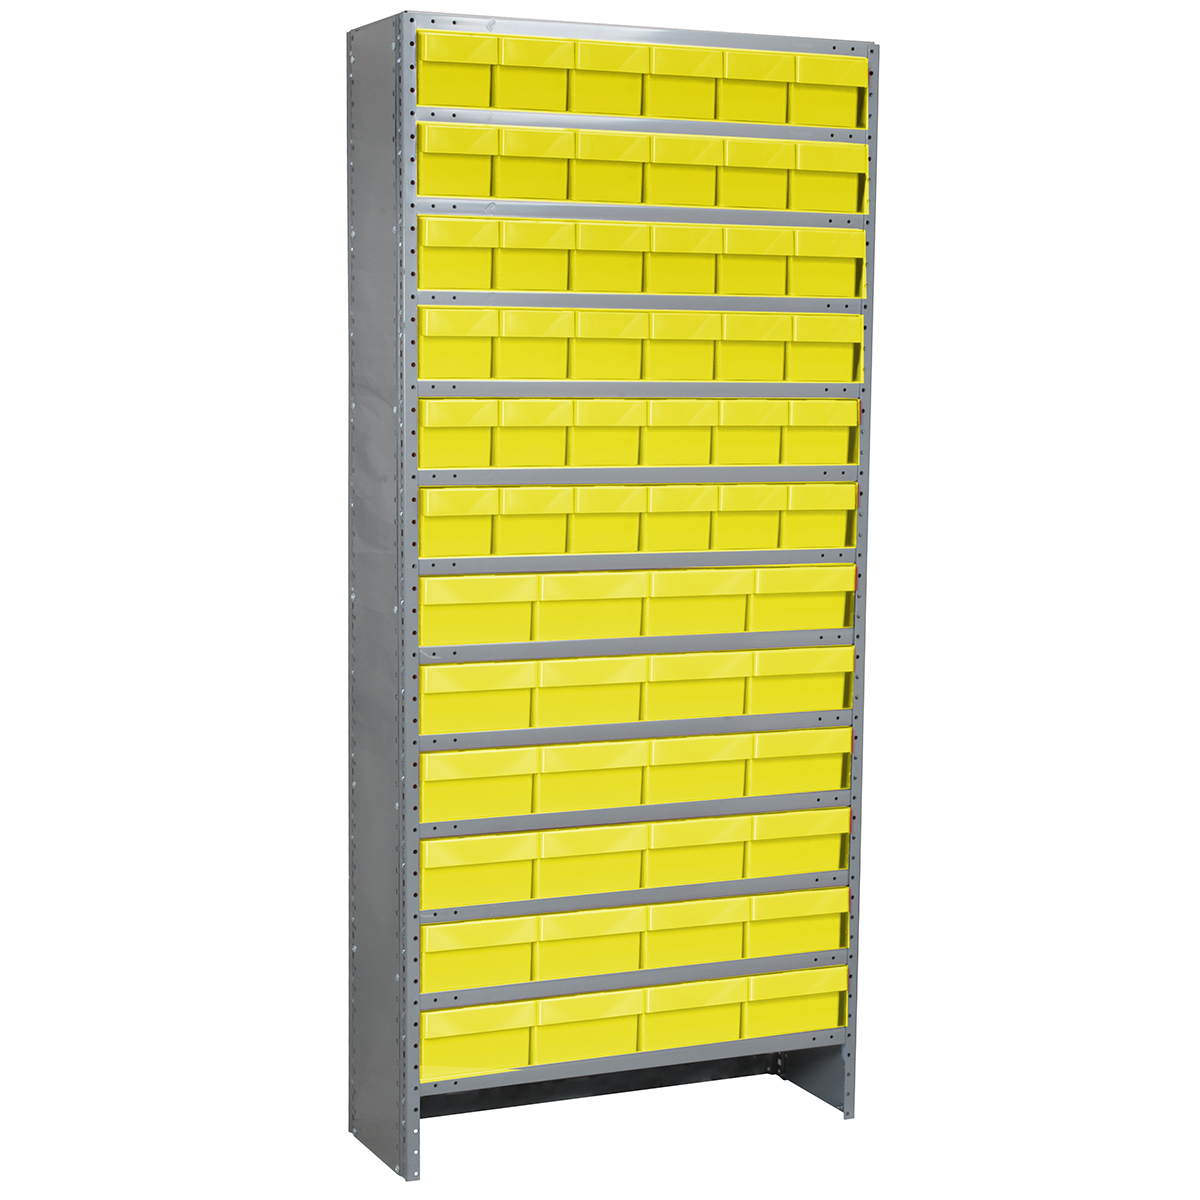 Enclosed Steel Shelving Kit, 18x36x79, 60 AkroDrawers, Gray/Yellow.  This item sold in carton quantities of 1.